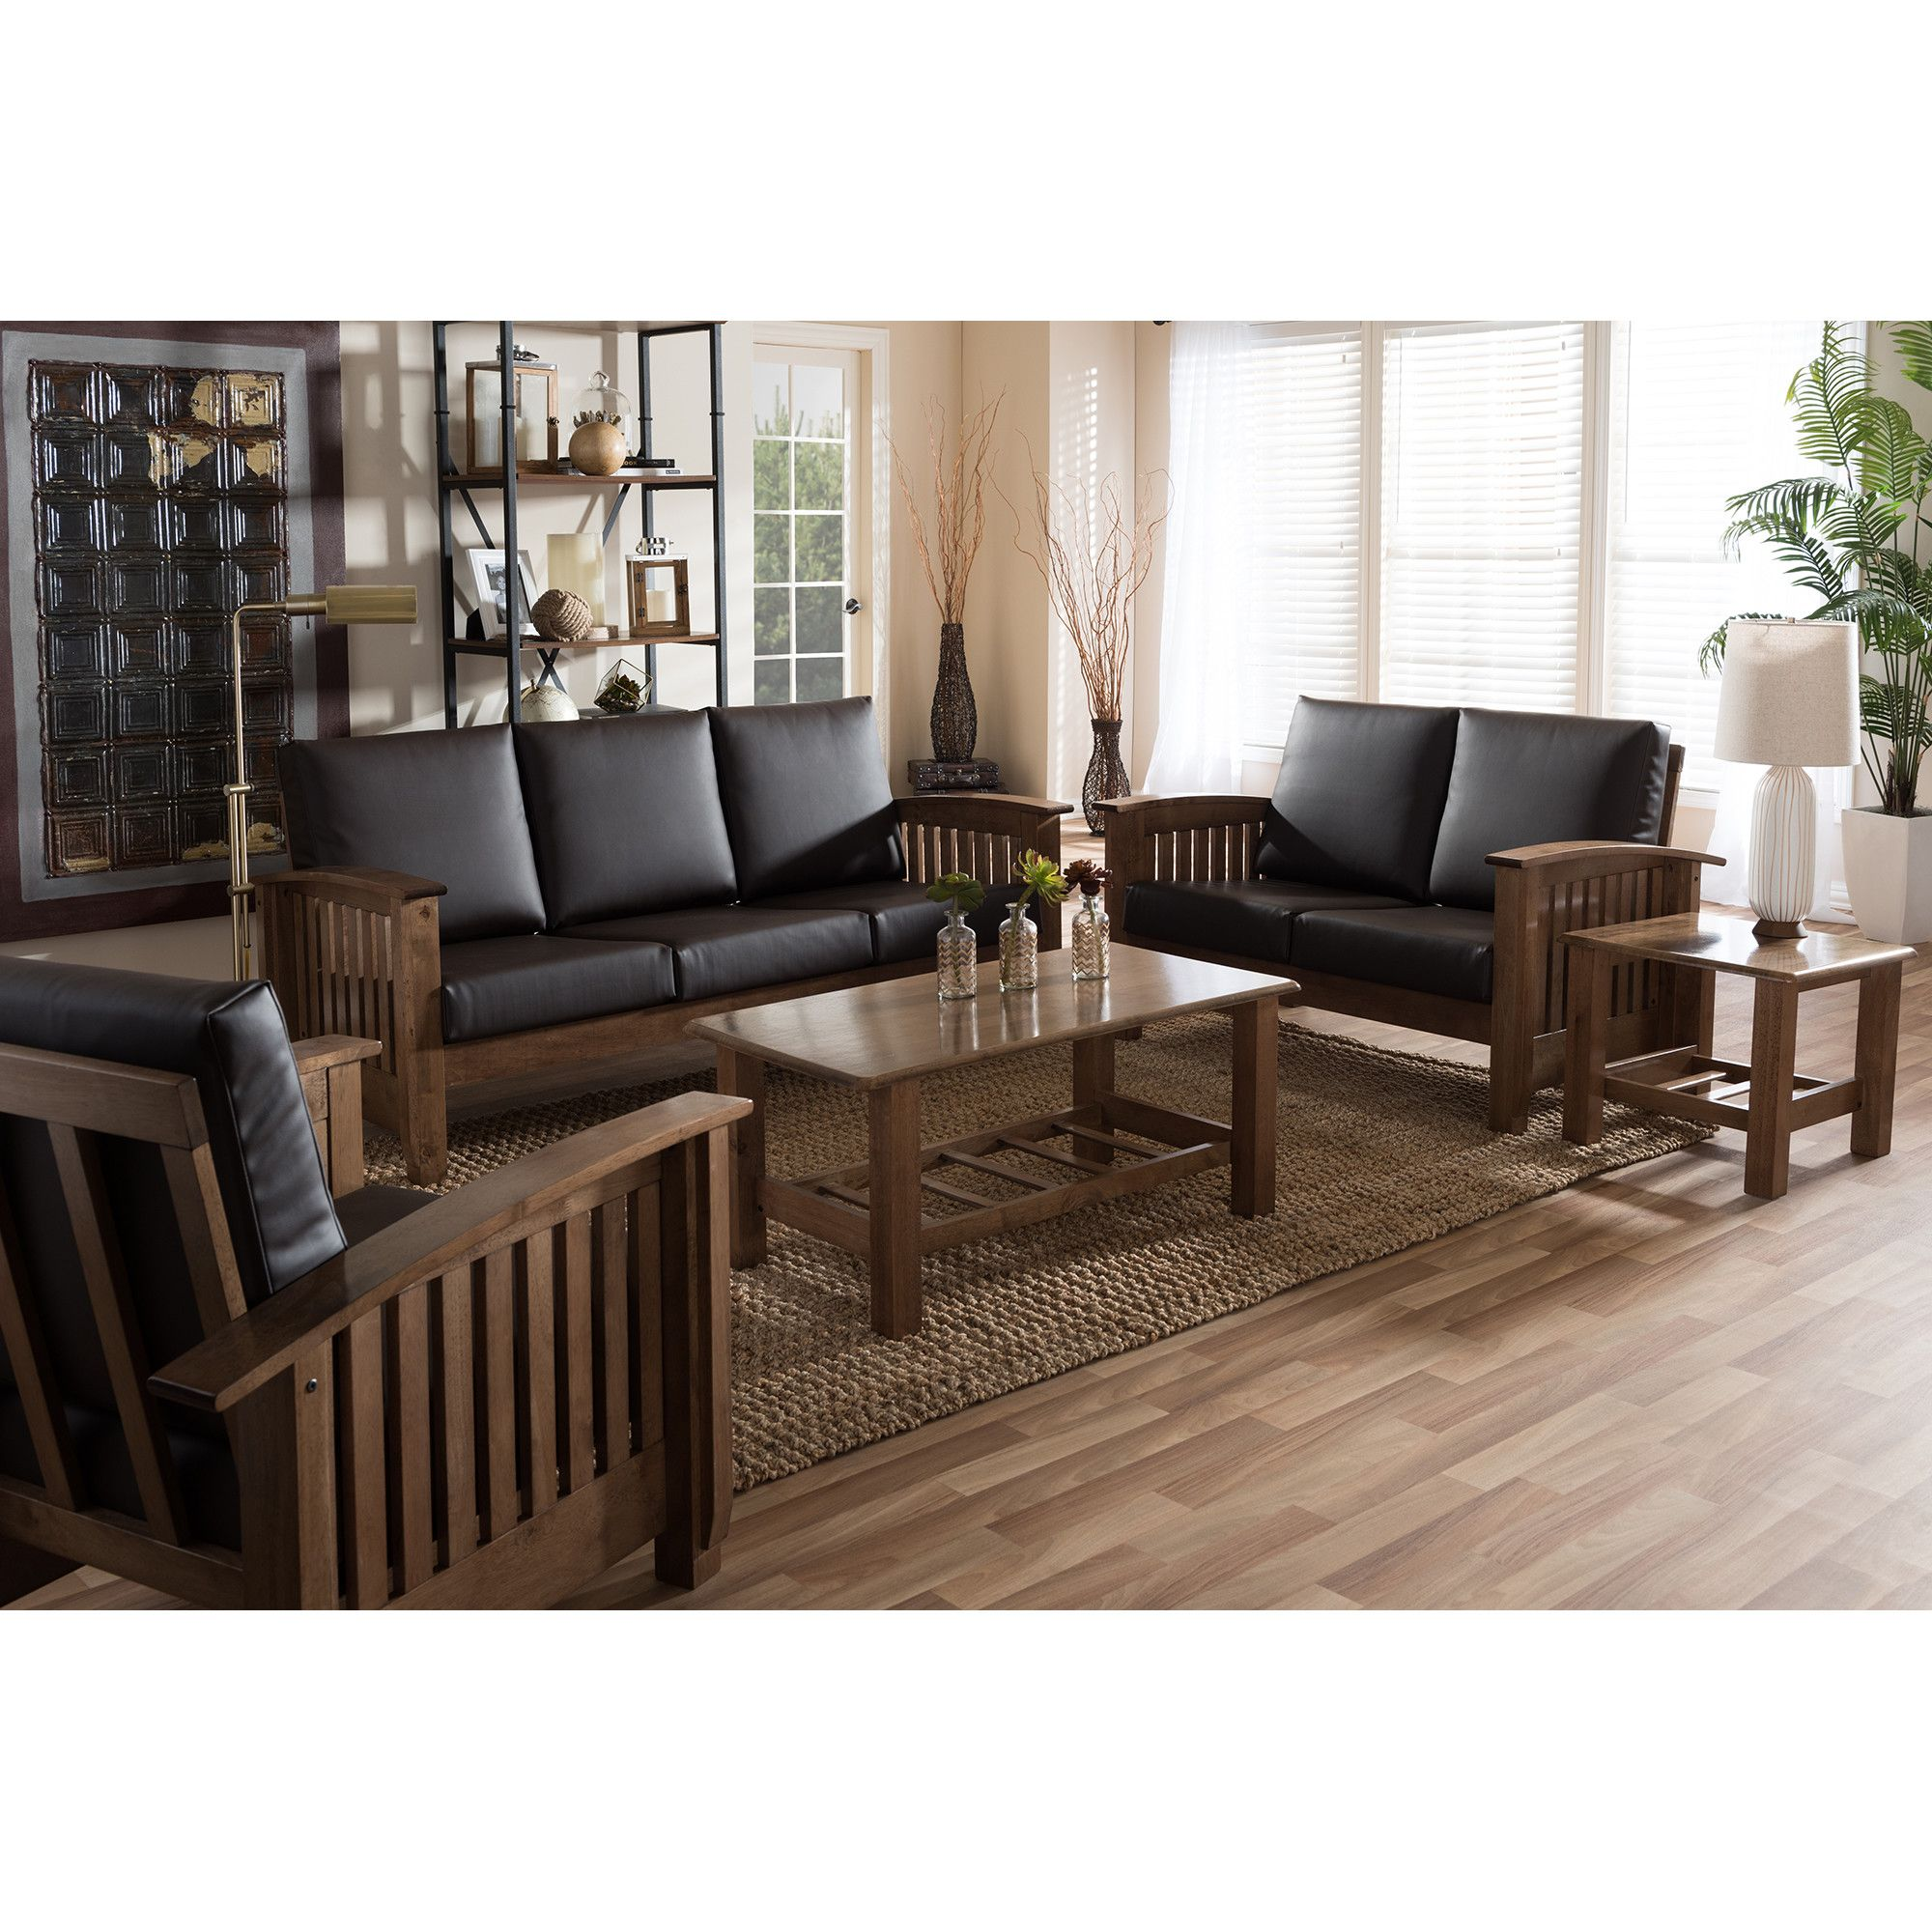 2293 Best Images About Leather Sofas And Living Room: Bierman 5-Piece Living Room Set